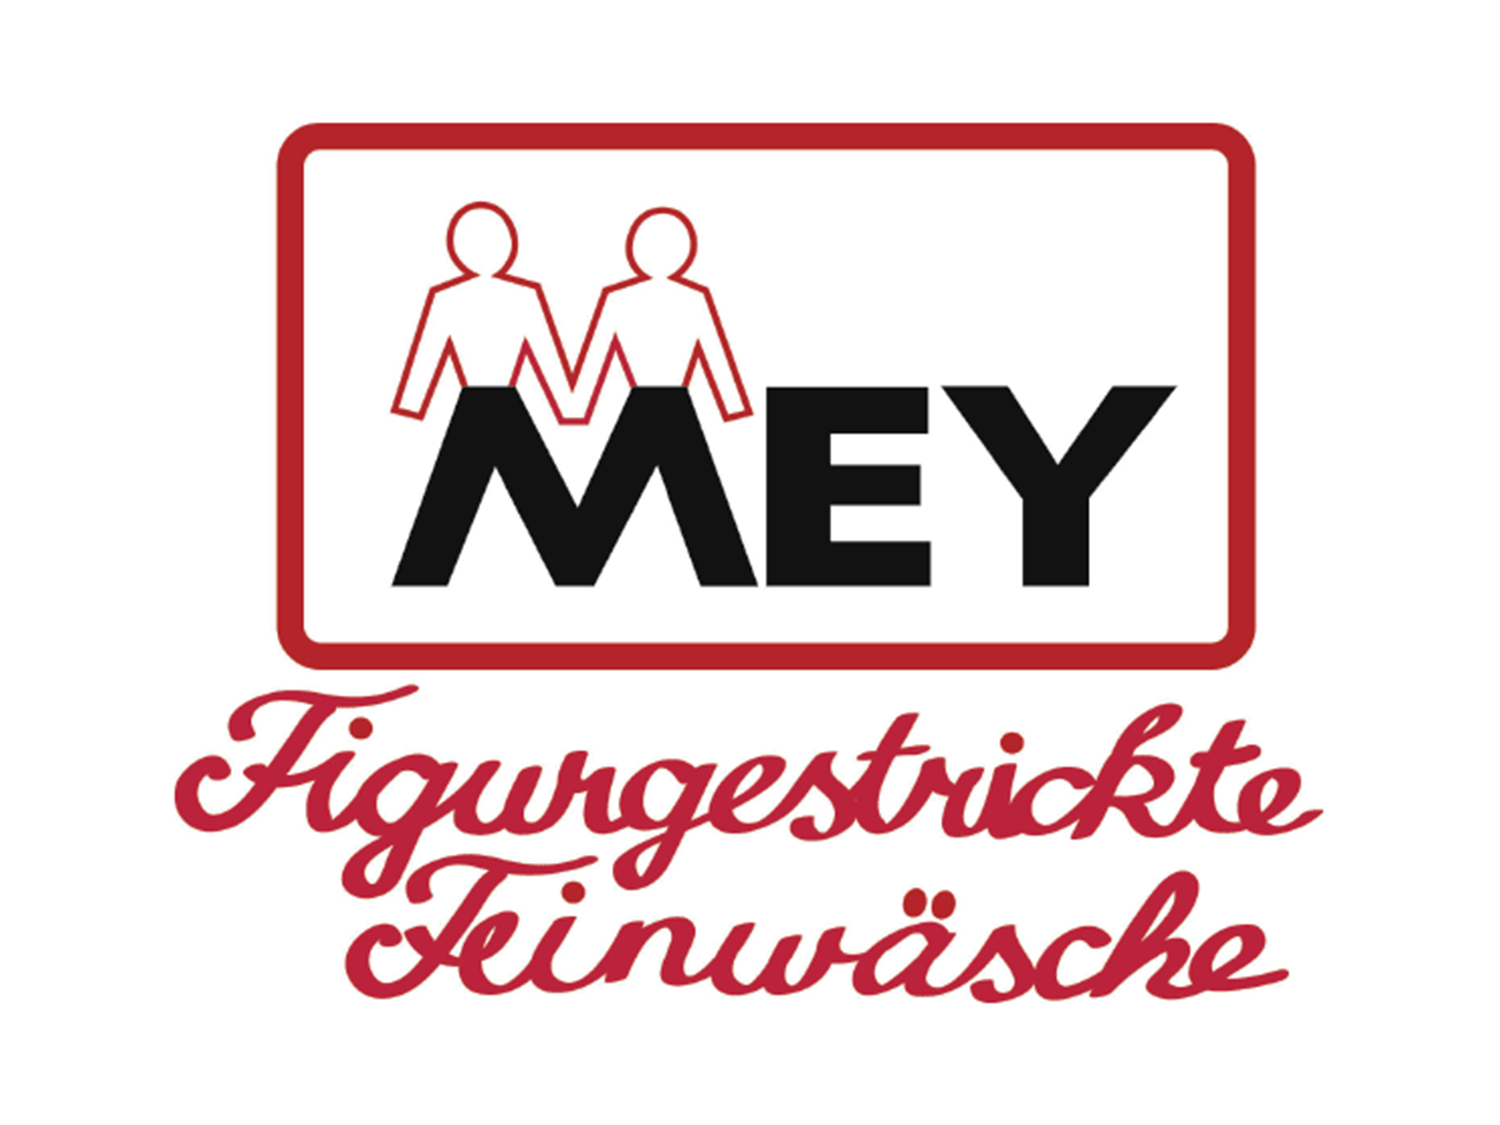 """Old mey® company logo for """"MEY Figurgestrickte Feinwäsche"""", the letter M forms the shape of two people 